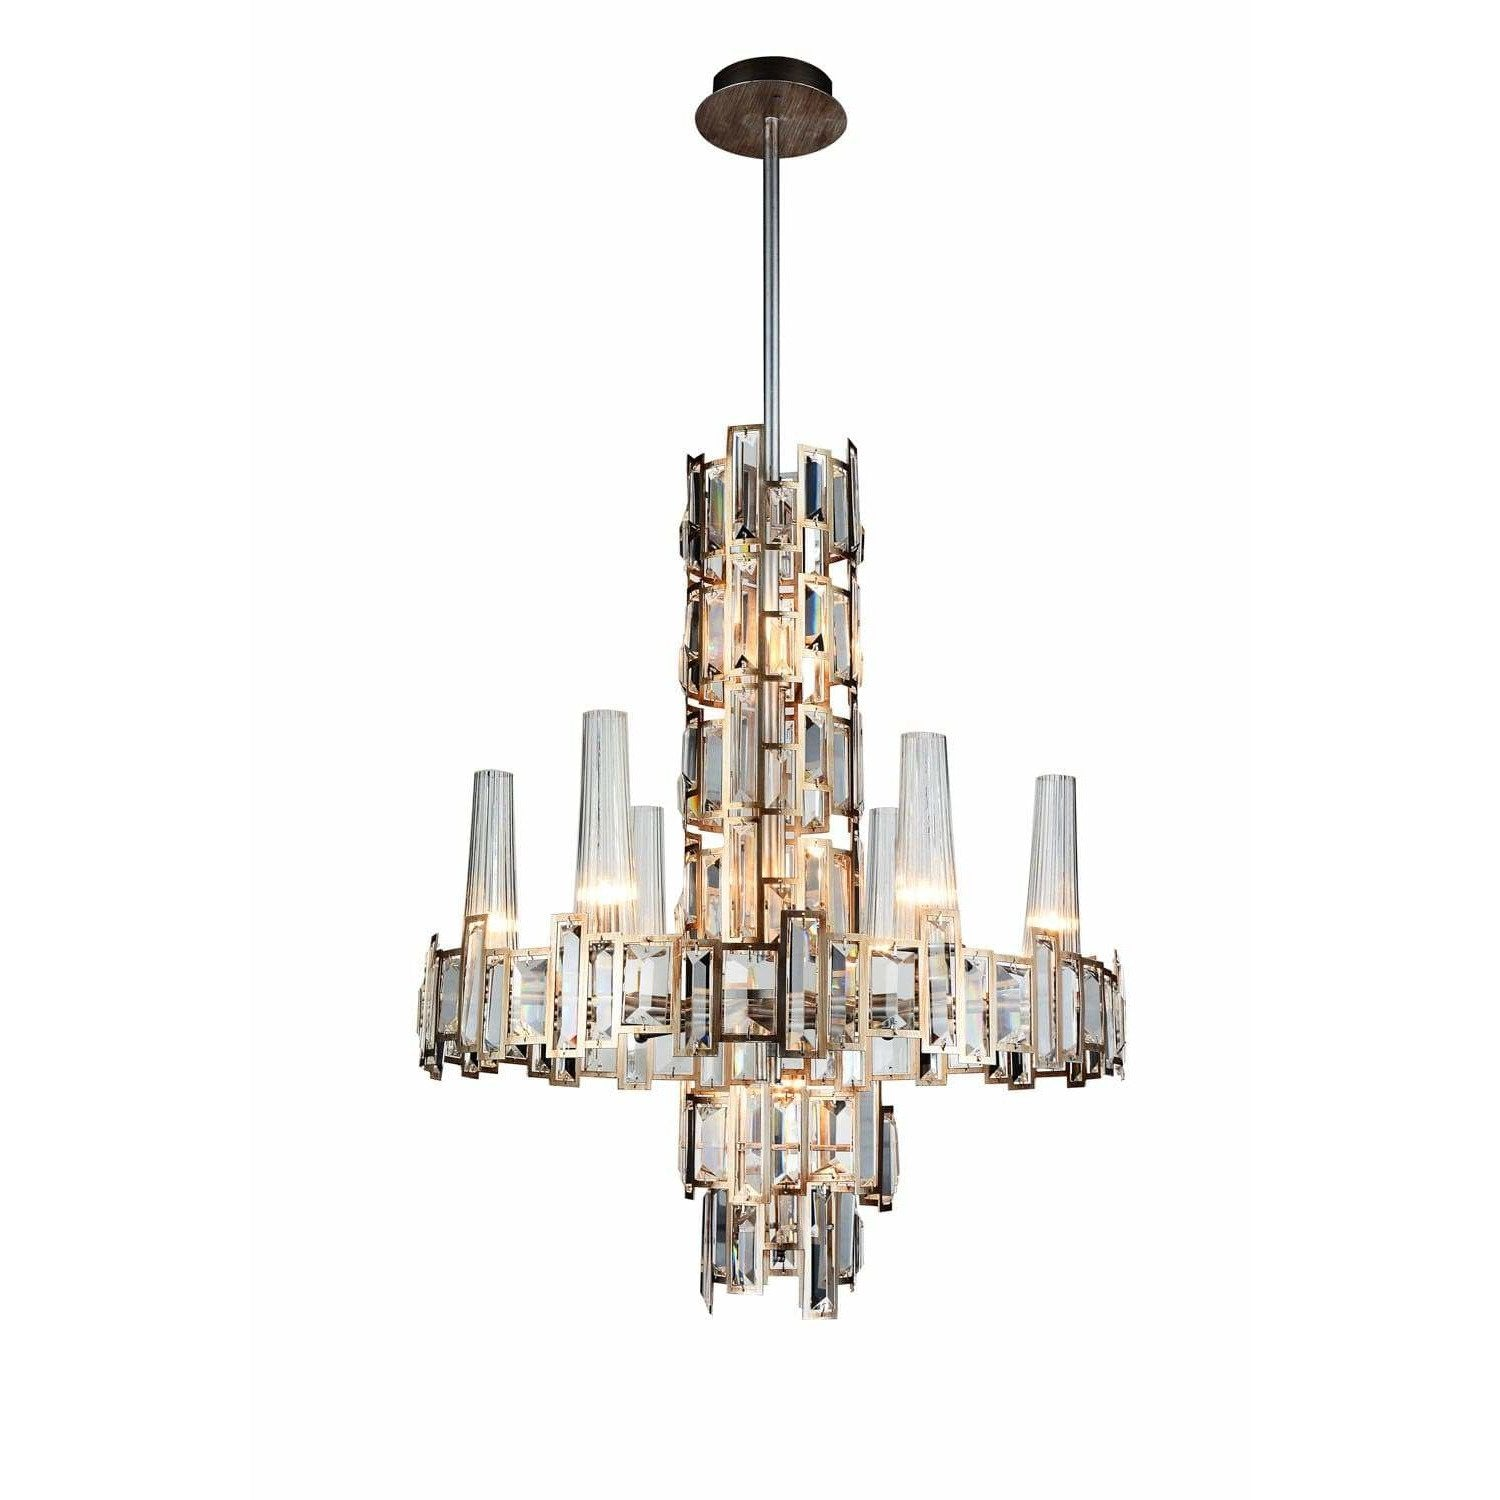 CWI Lighting Chandeliers Champagne / K9 Clear Quida 12 Light Down Chandelier with Champagne finish by CWI Lighting 9903P24-12-193